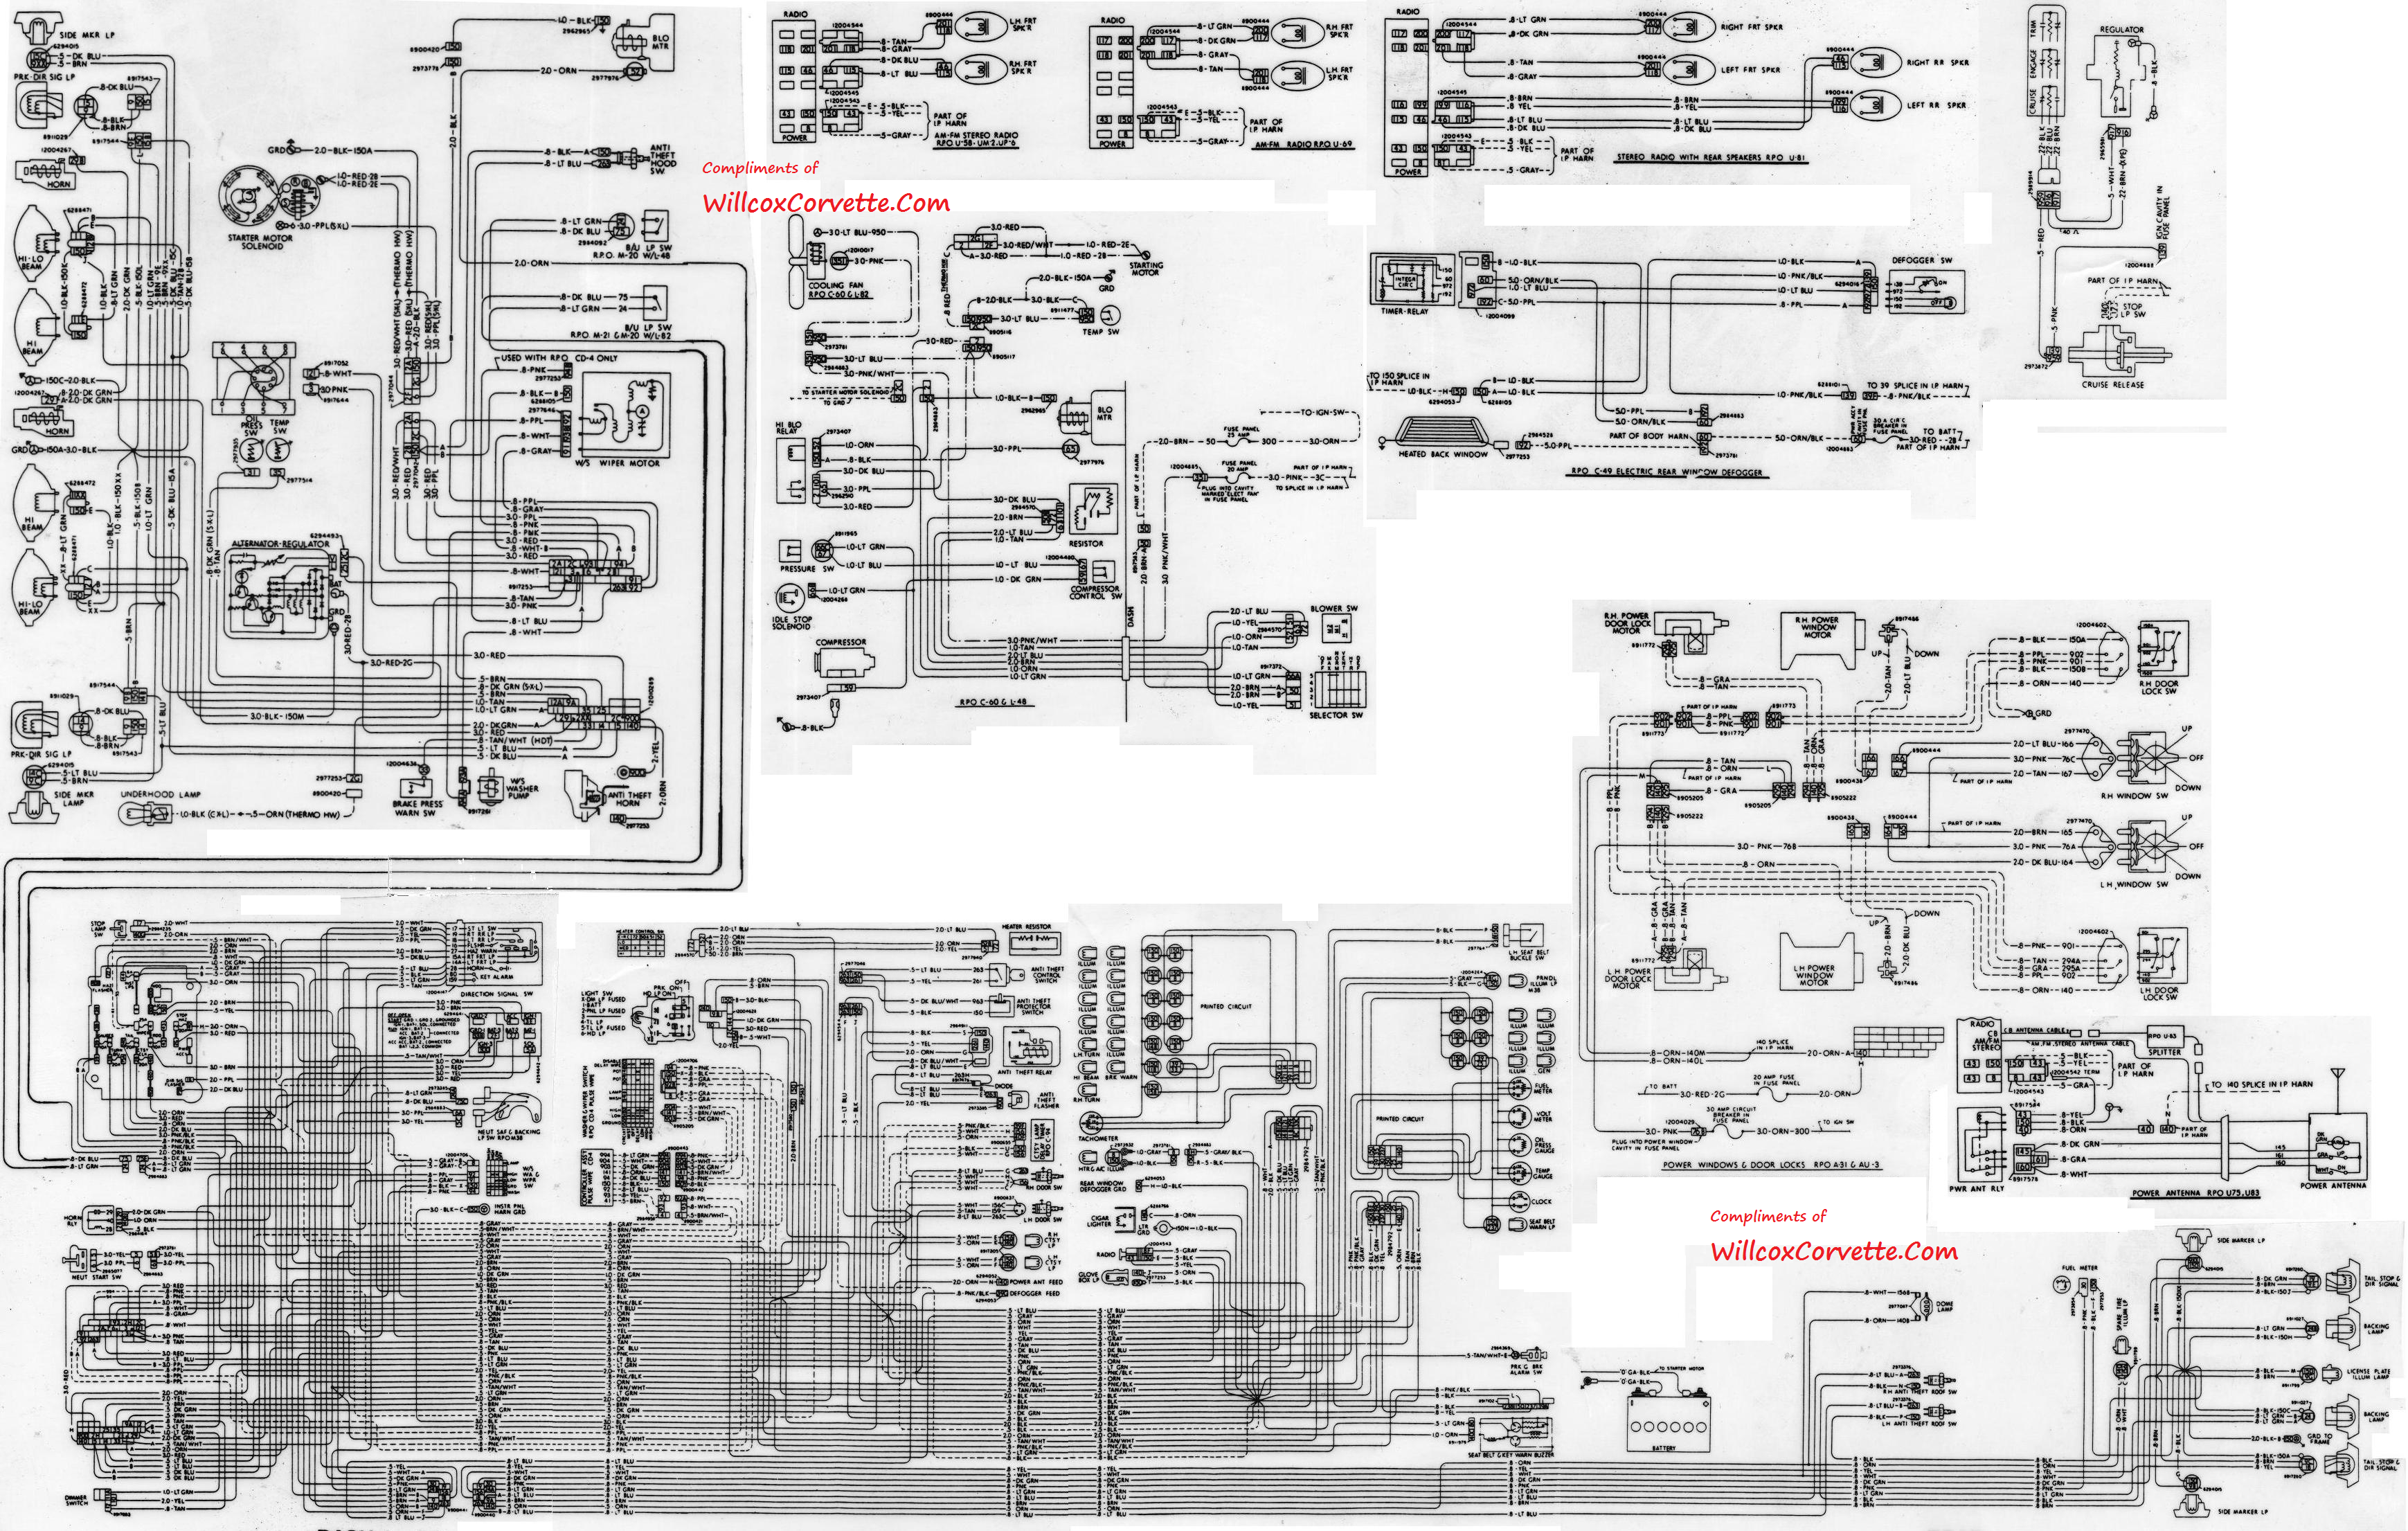 79 COMBINED TRACER SCHEMATIC 1979 wiring diagram corvetteforum chevrolet corvette forum c3 corvette wiring diagram at panicattacktreatment.co